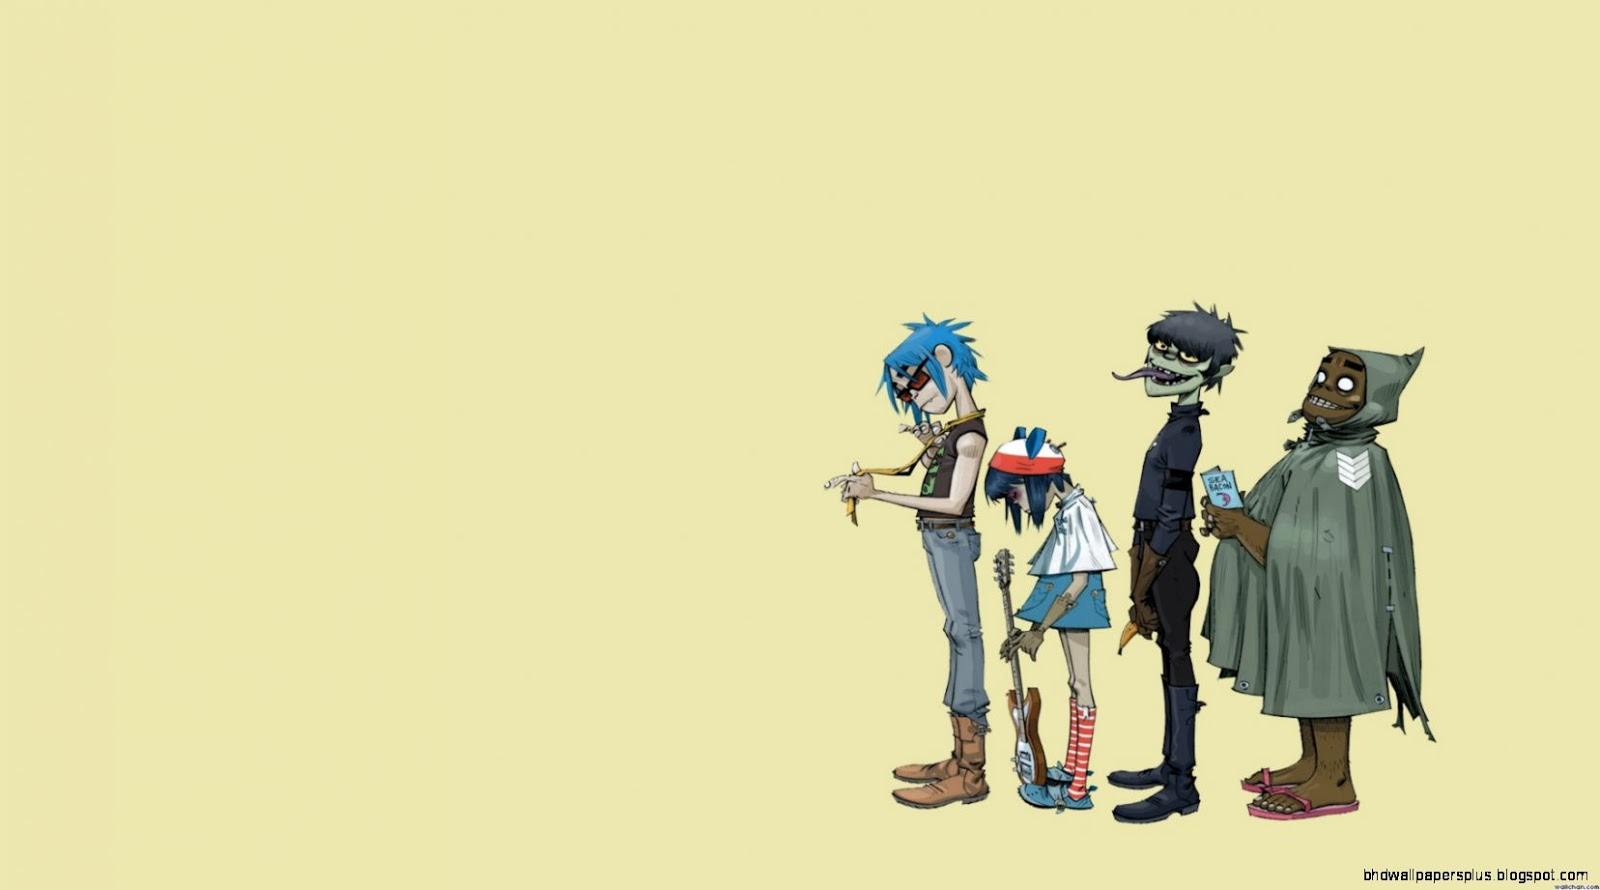 Gorillaz Hd Wallpapers And Backgrounds - Gorillaz Noodle Grown Up , HD Wallpaper & Backgrounds